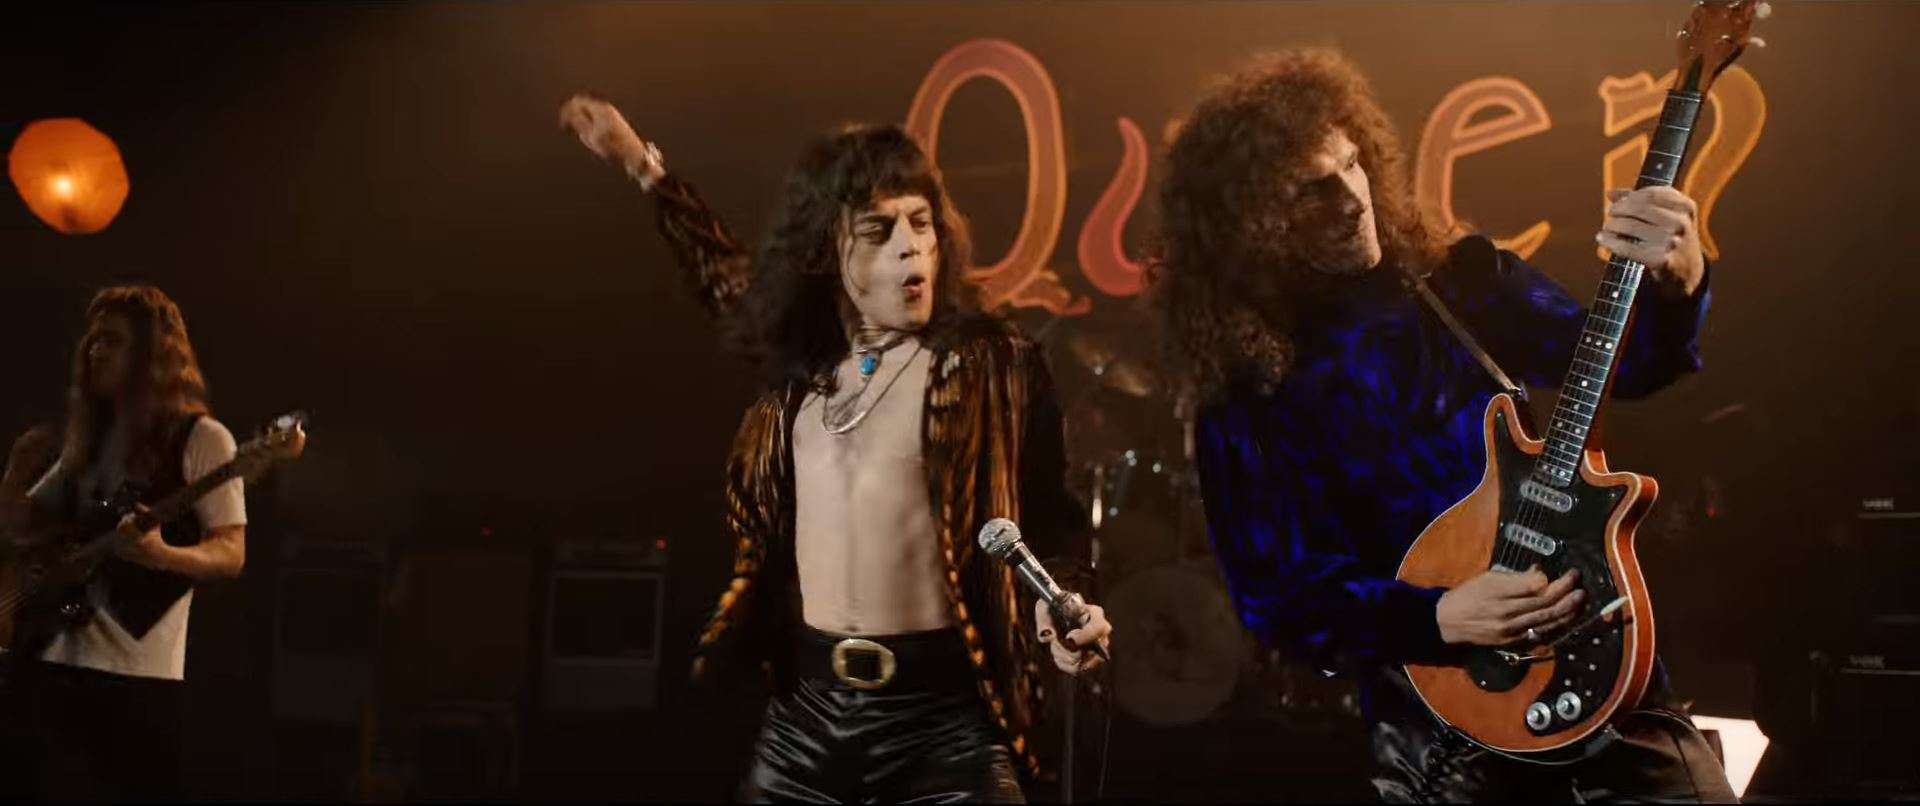 Bohemian Rhapsody Movie Photos | Bohemian Rhapsody Movie Stills | Bohemian Rhapsody International Movie Photo Gallery - ETimes Photogallery